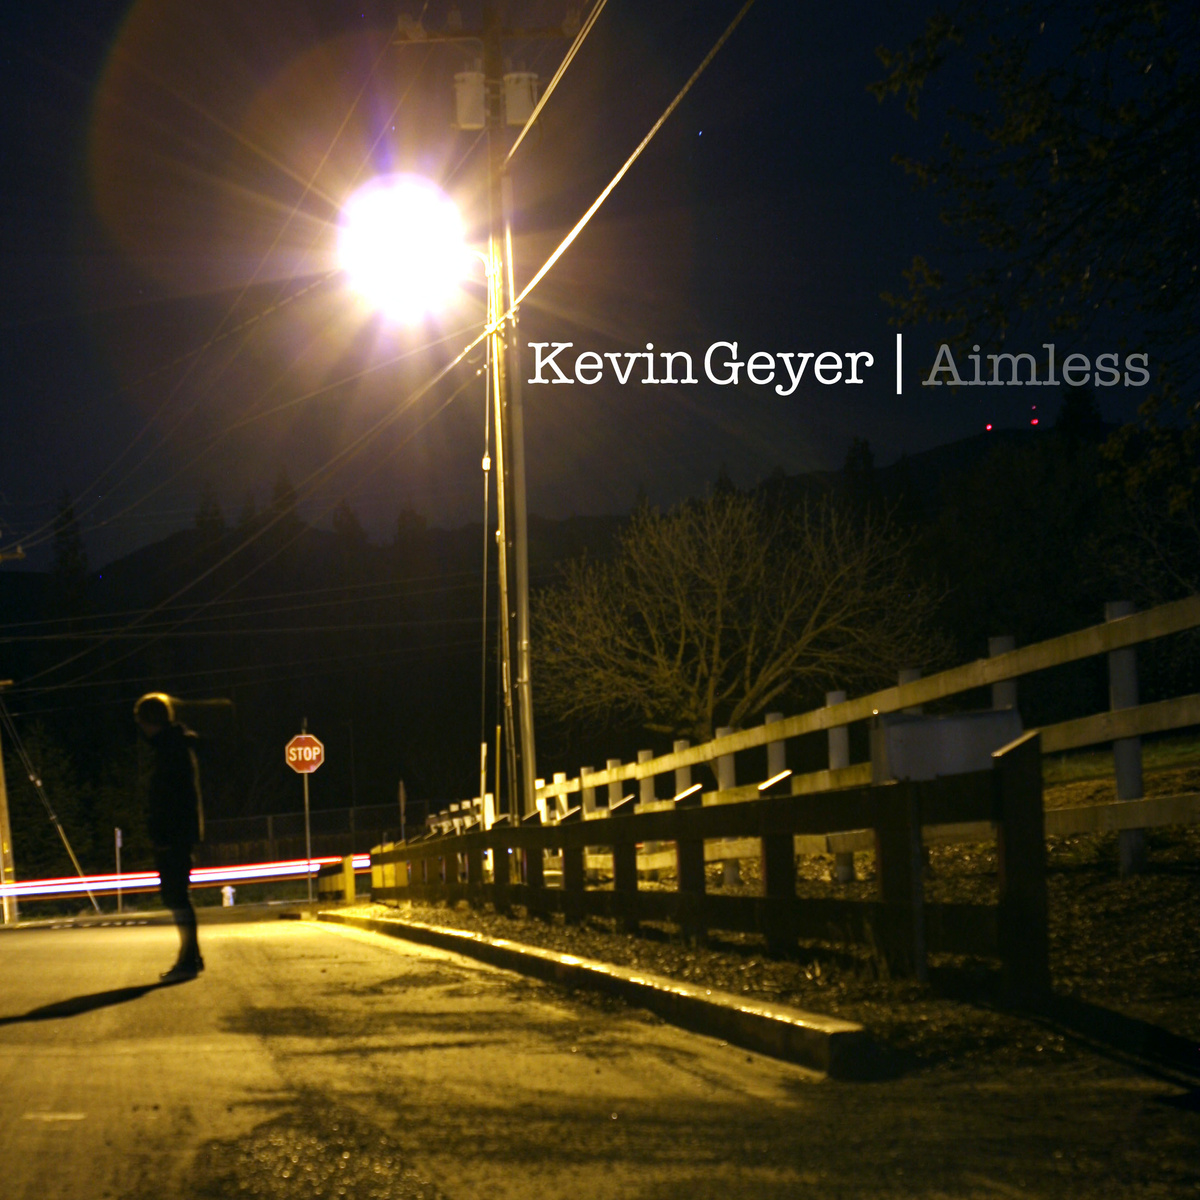 Kevin Geyer - Aimless